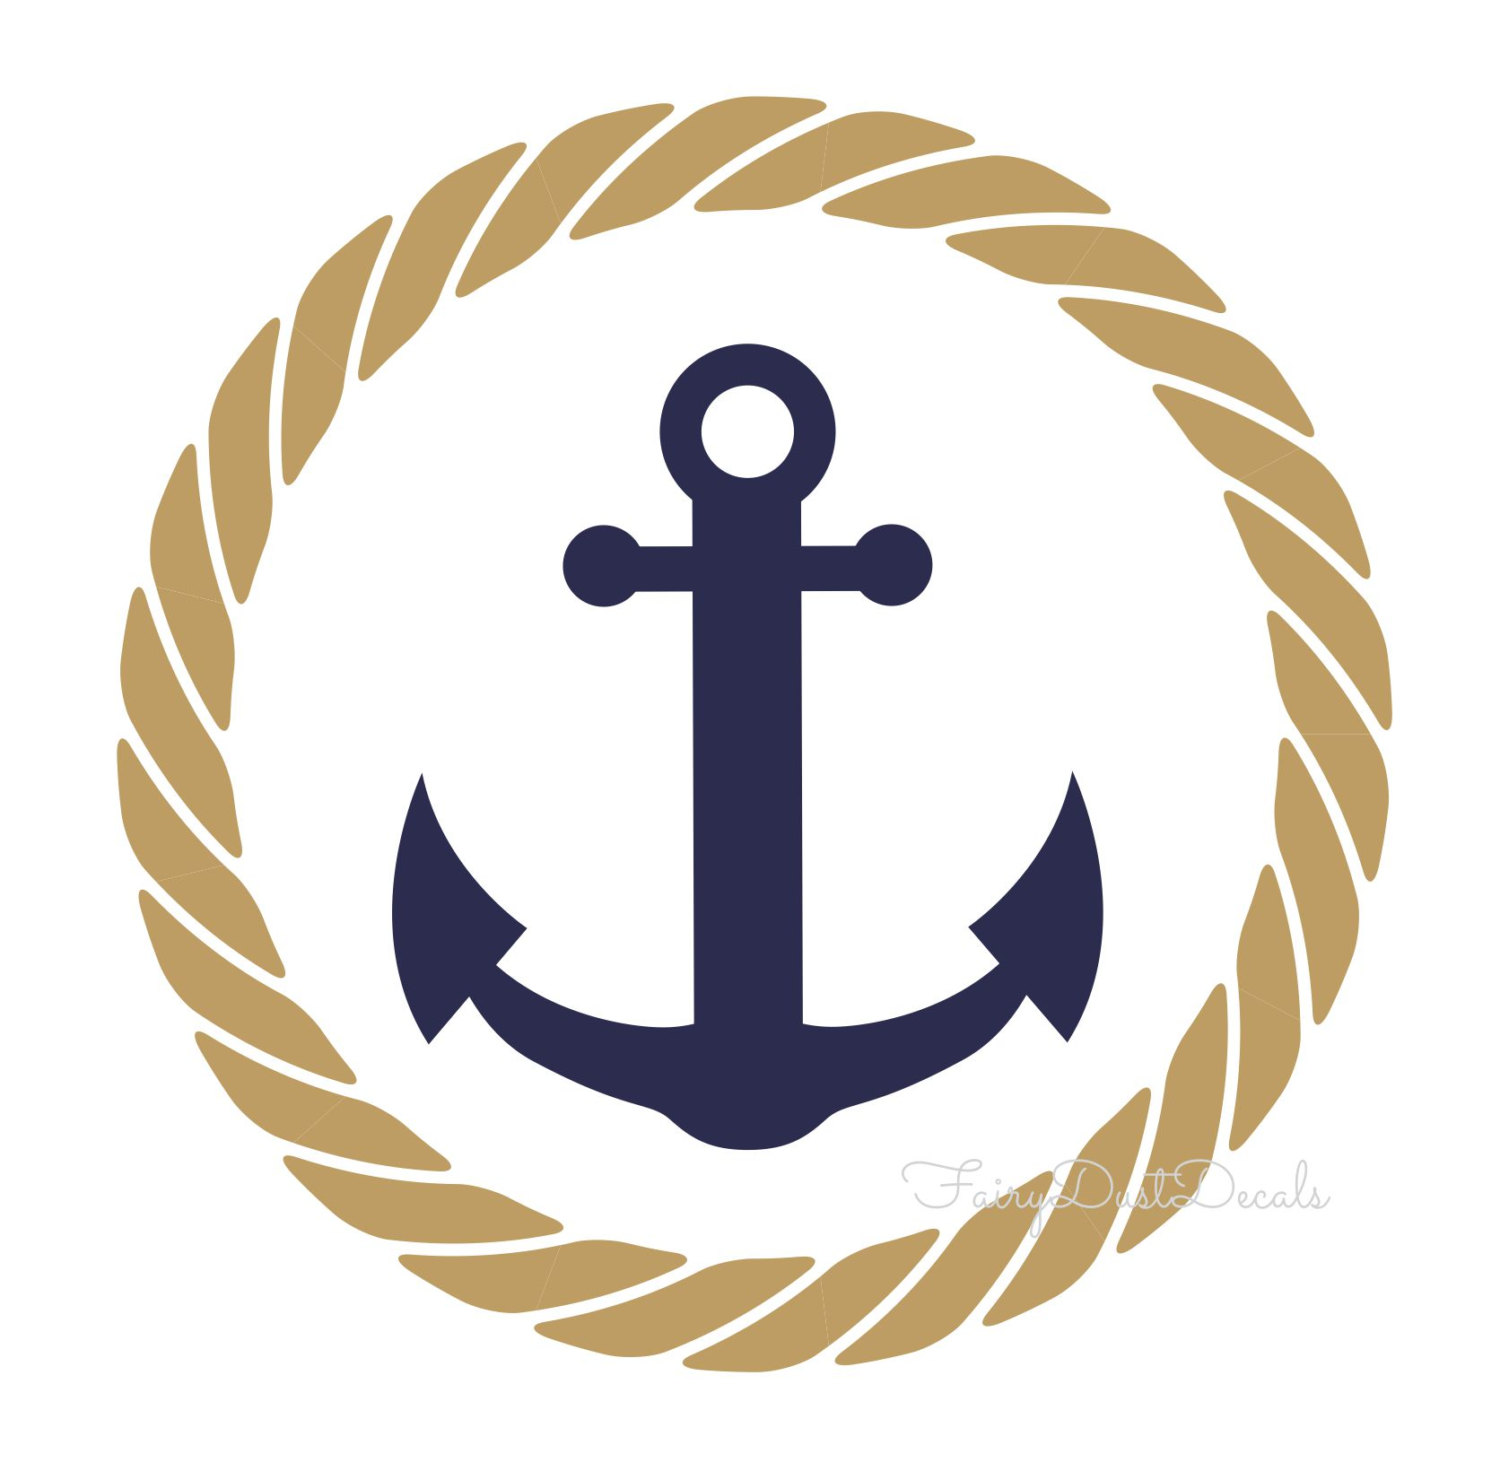 Nautical Rope Clipart on Navy Border Clip Art